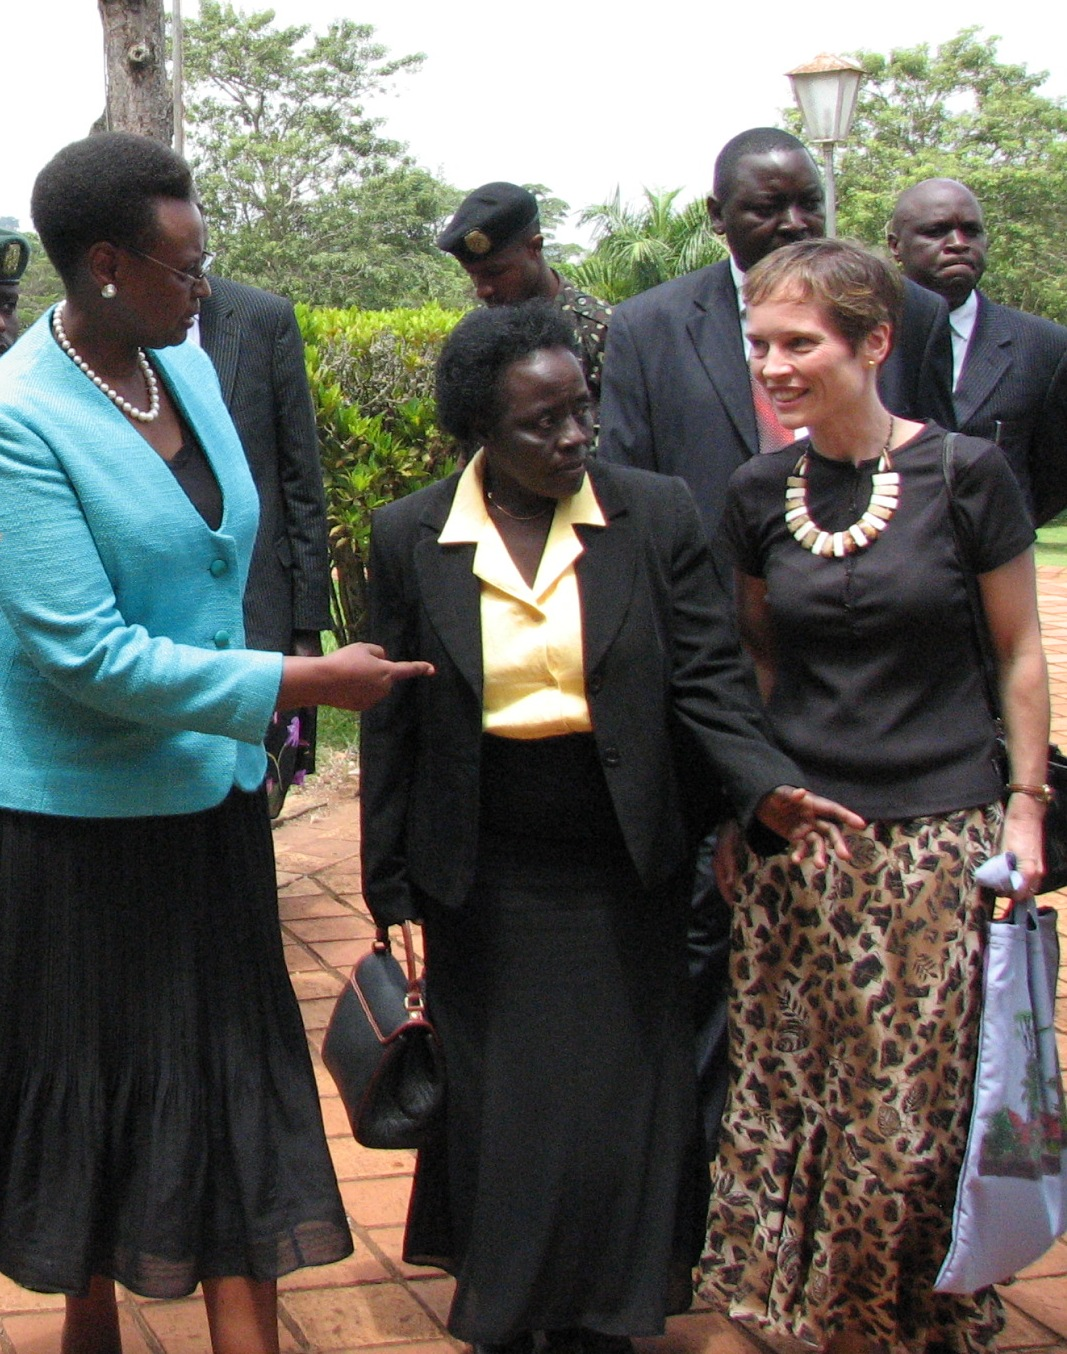 Dr Jean Chamberlain-Froese with First Lady of Uganda